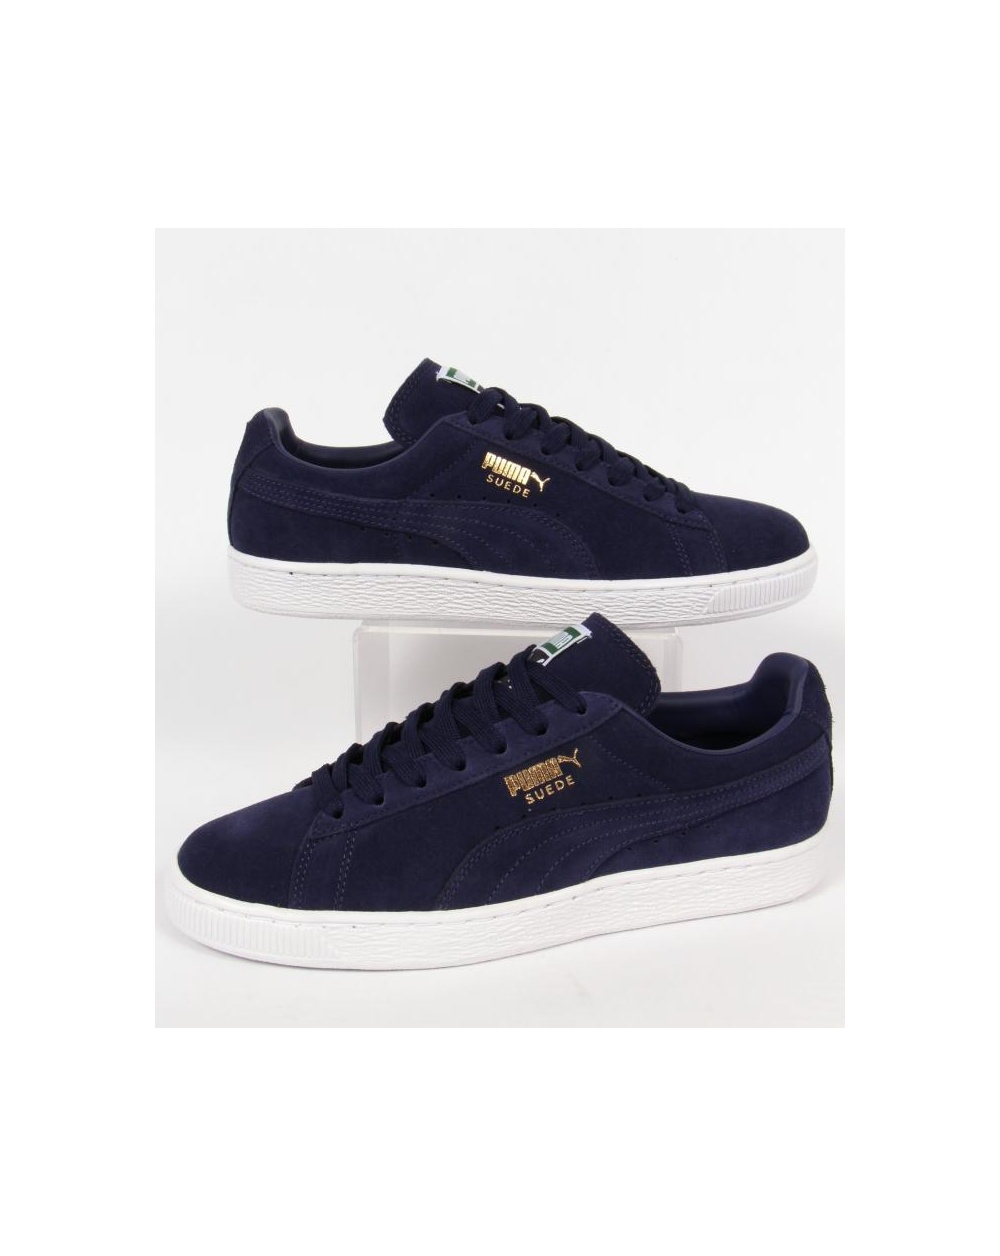 puma suede classic trainers navy navy puma from 80s. Black Bedroom Furniture Sets. Home Design Ideas